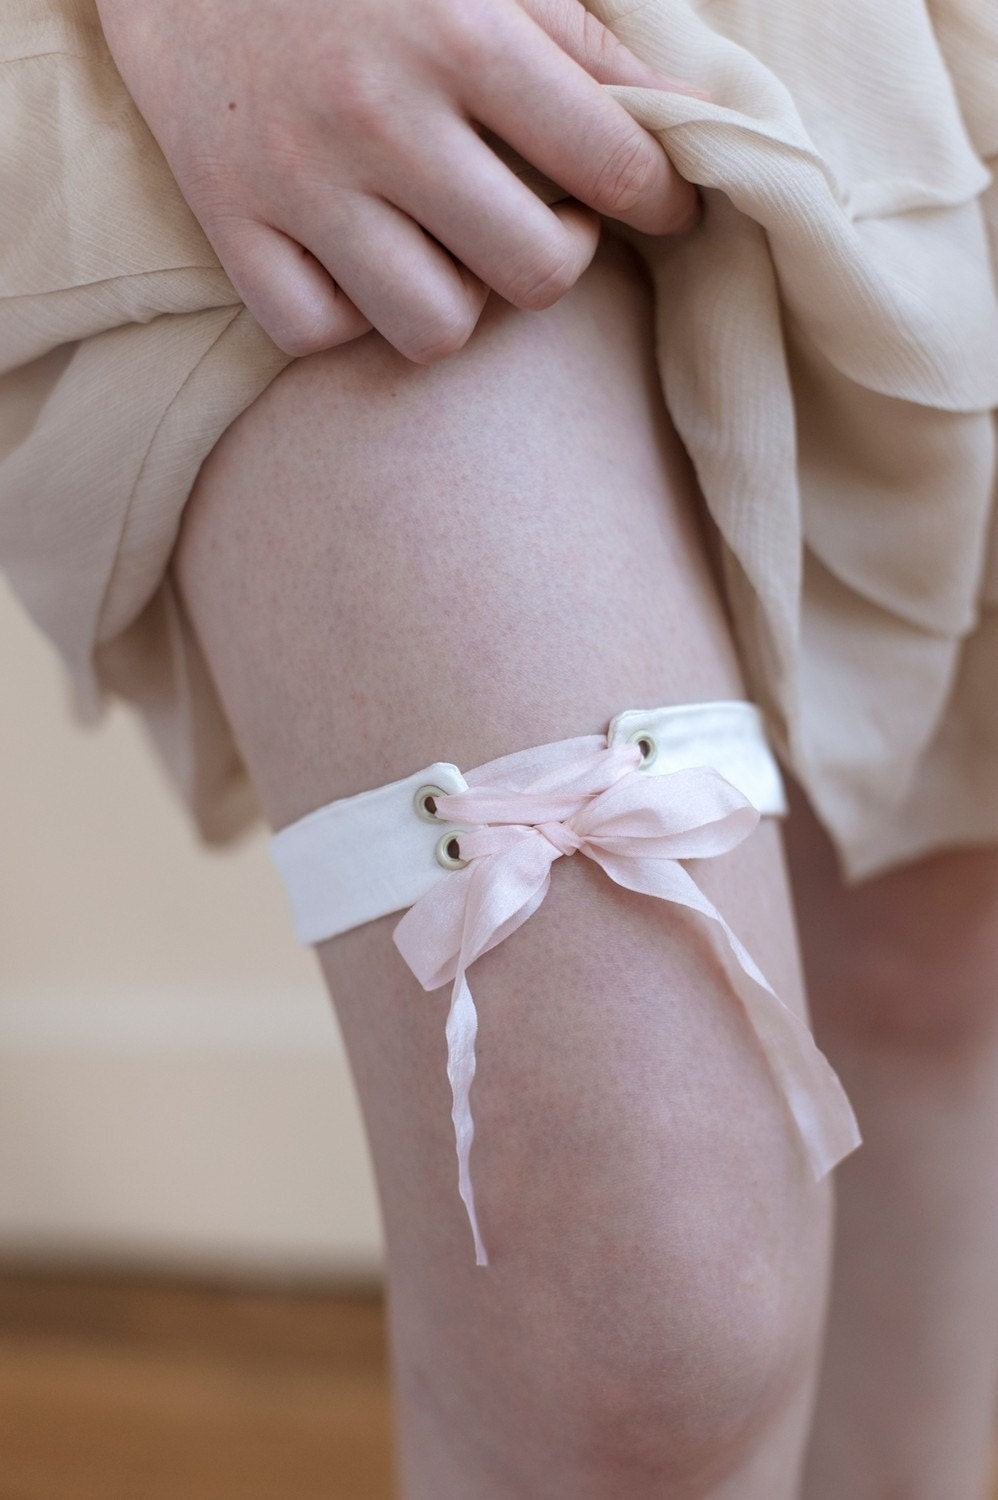 Petite corset style garter - Style 061 - Made to Order